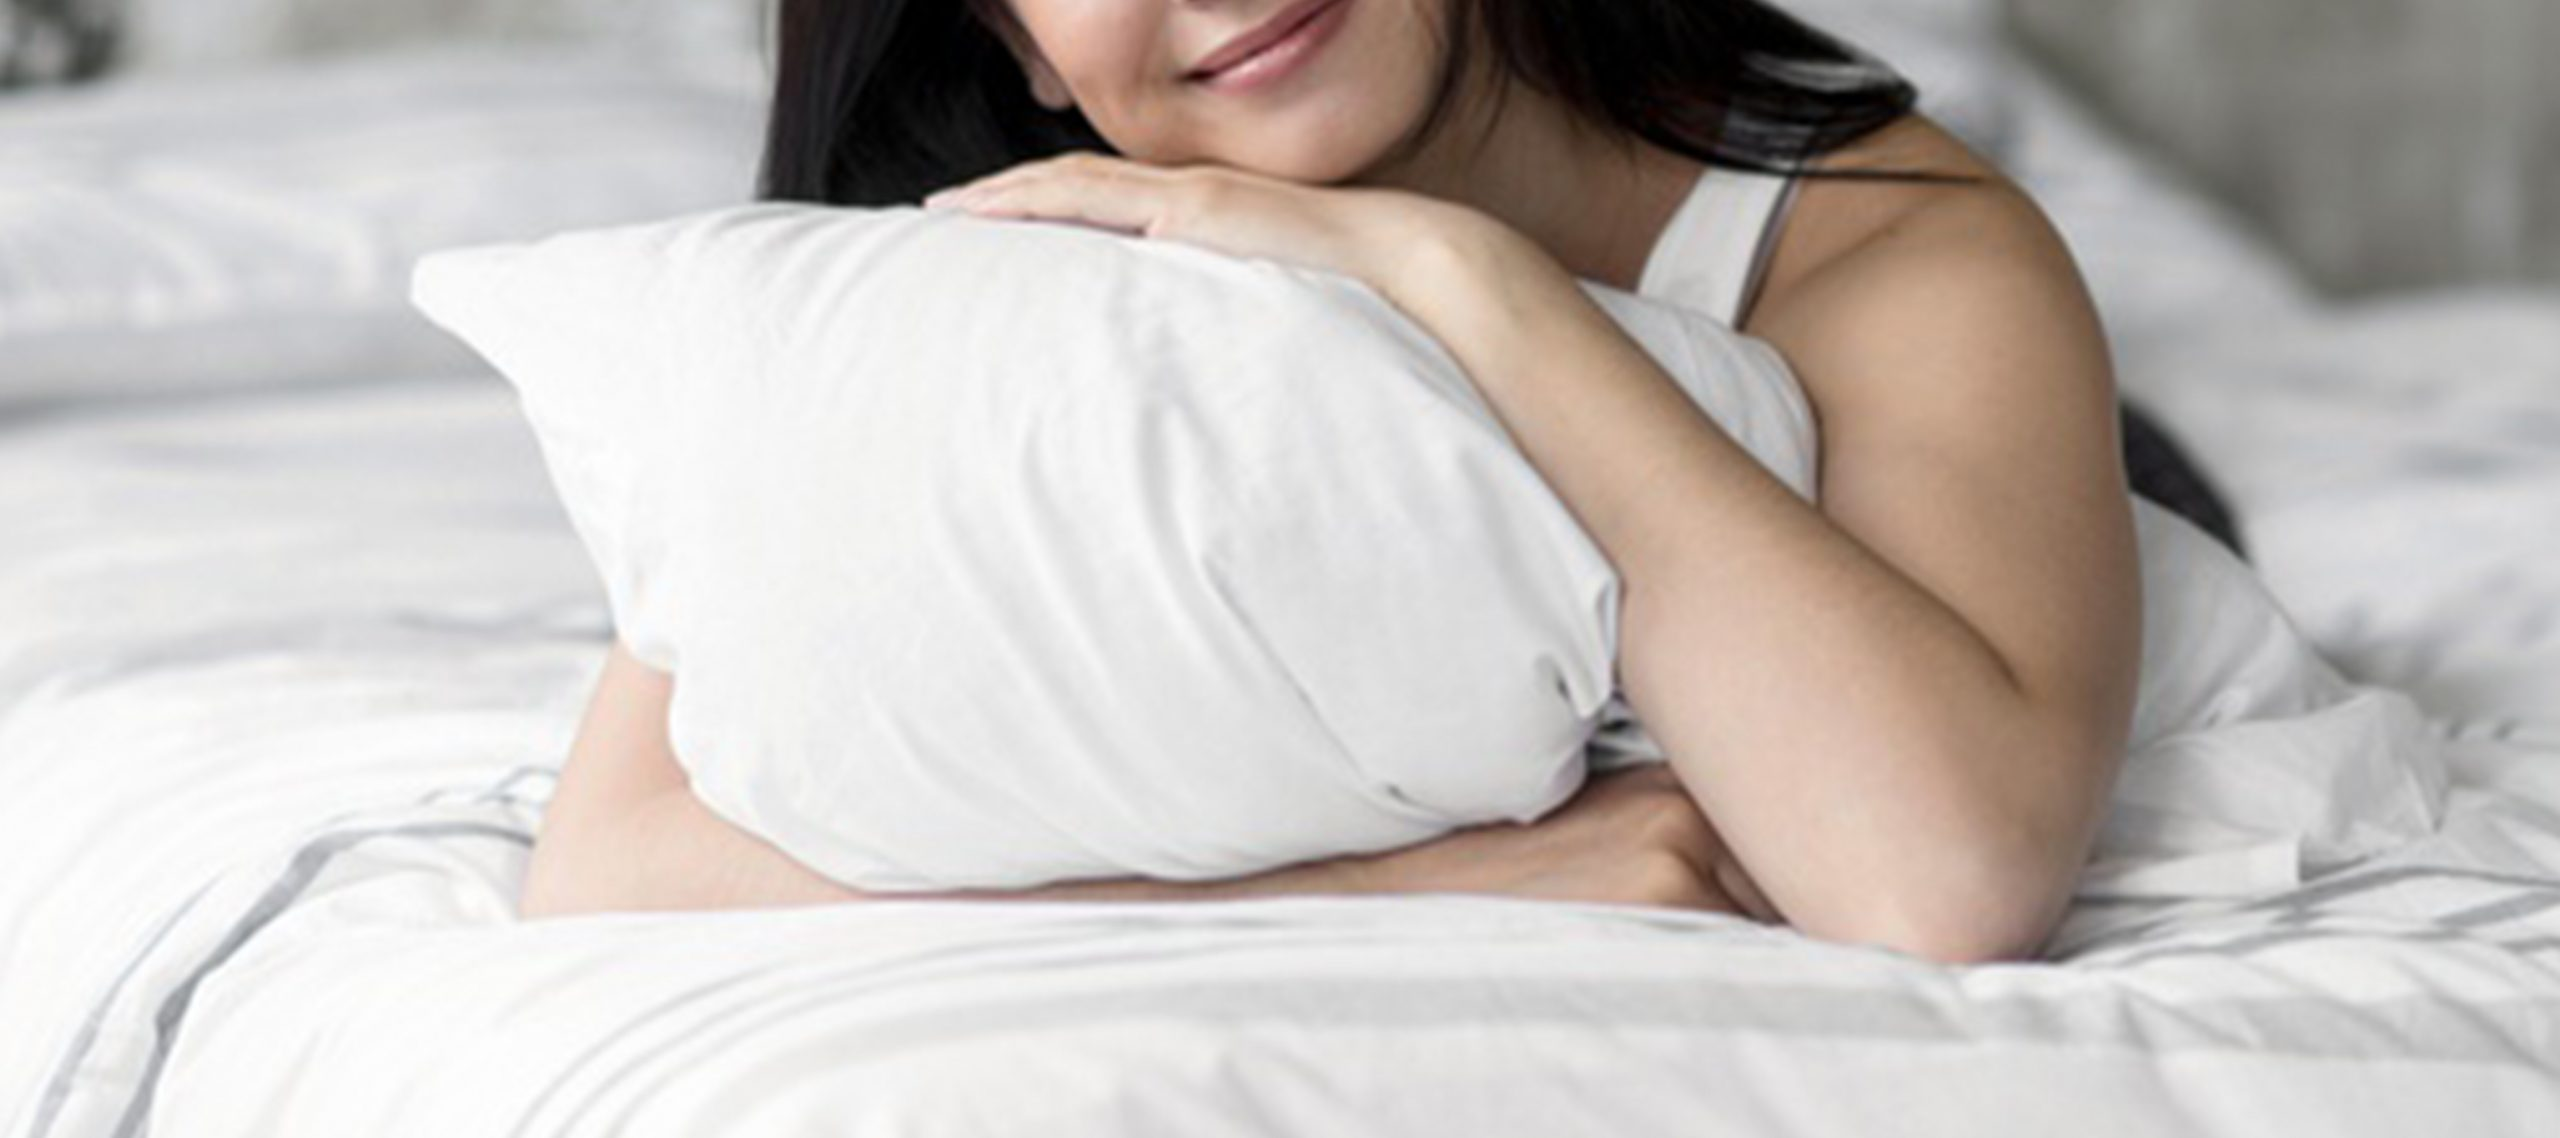 When was the last time you washed your pillows?